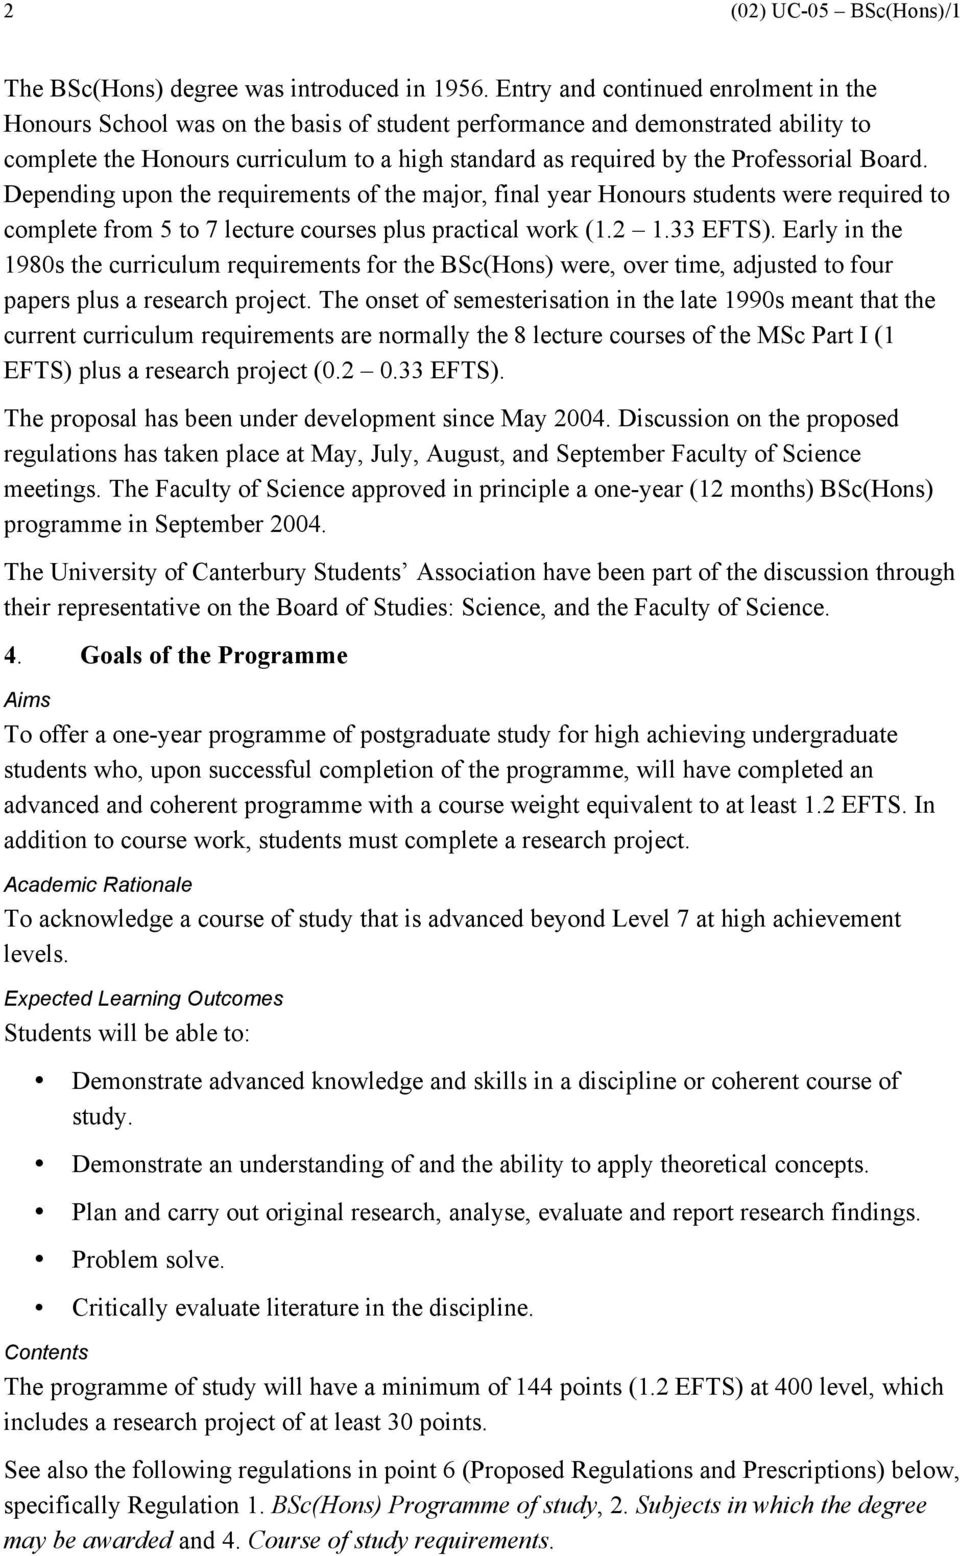 UNIVERSITY OF CANTERBURY Bachelor of Science with Honours - PDF